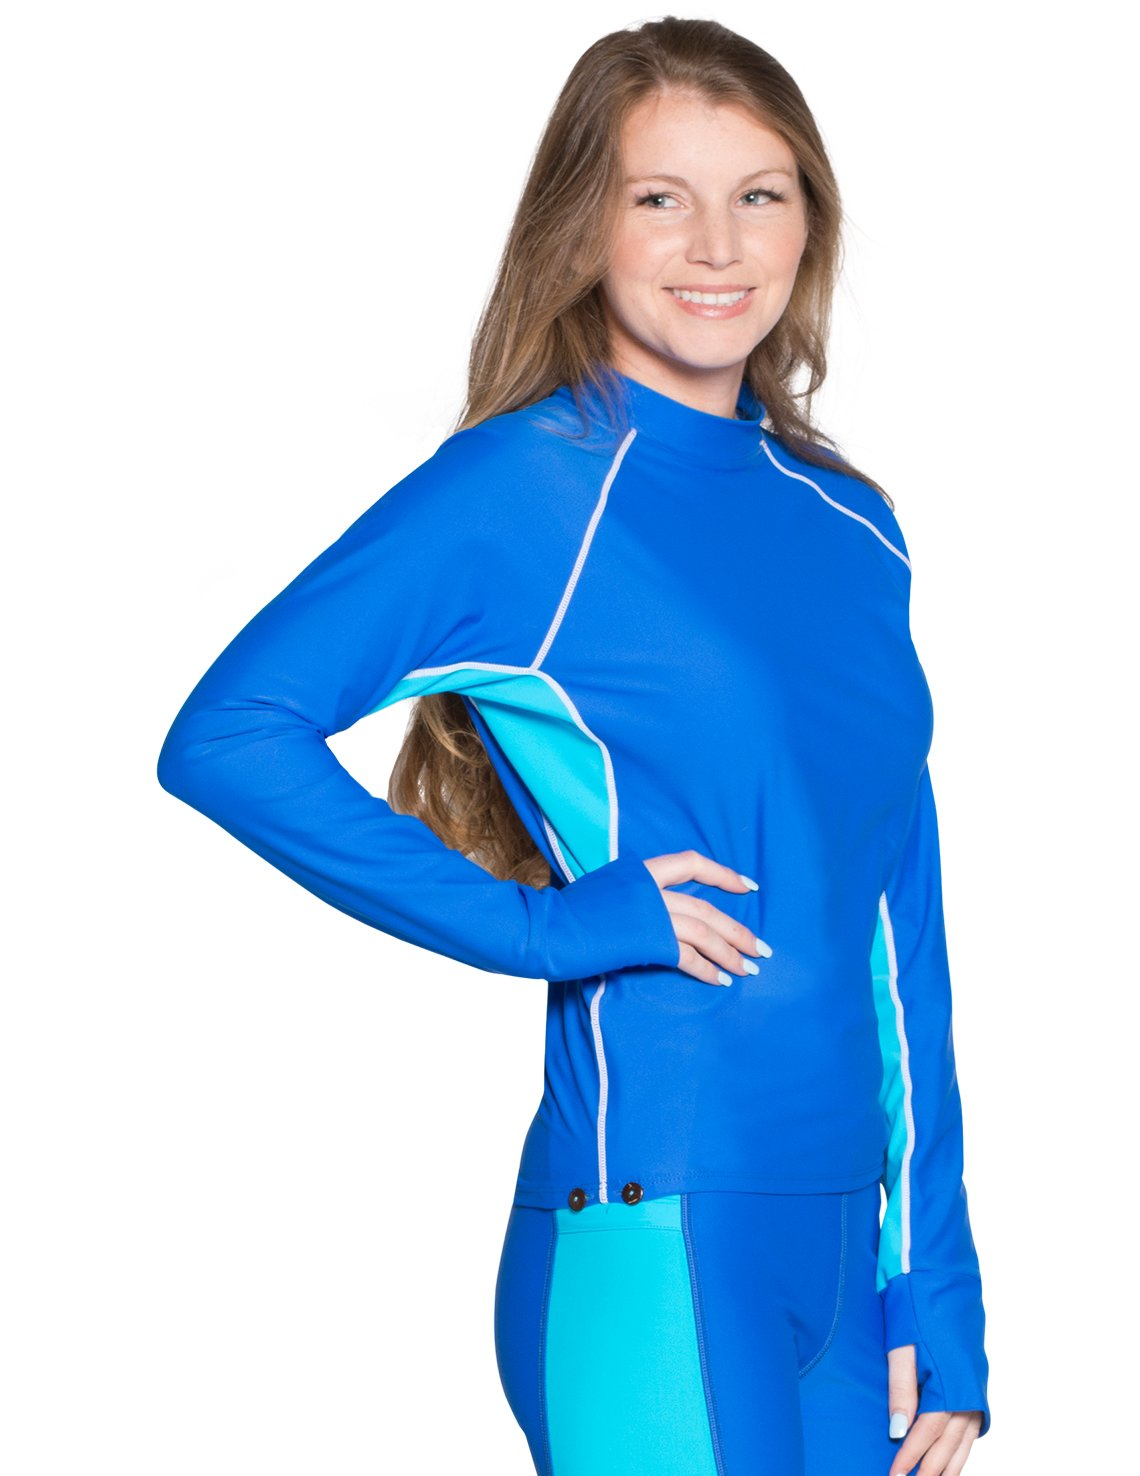 Tuga rashguard for snorkeling in blue